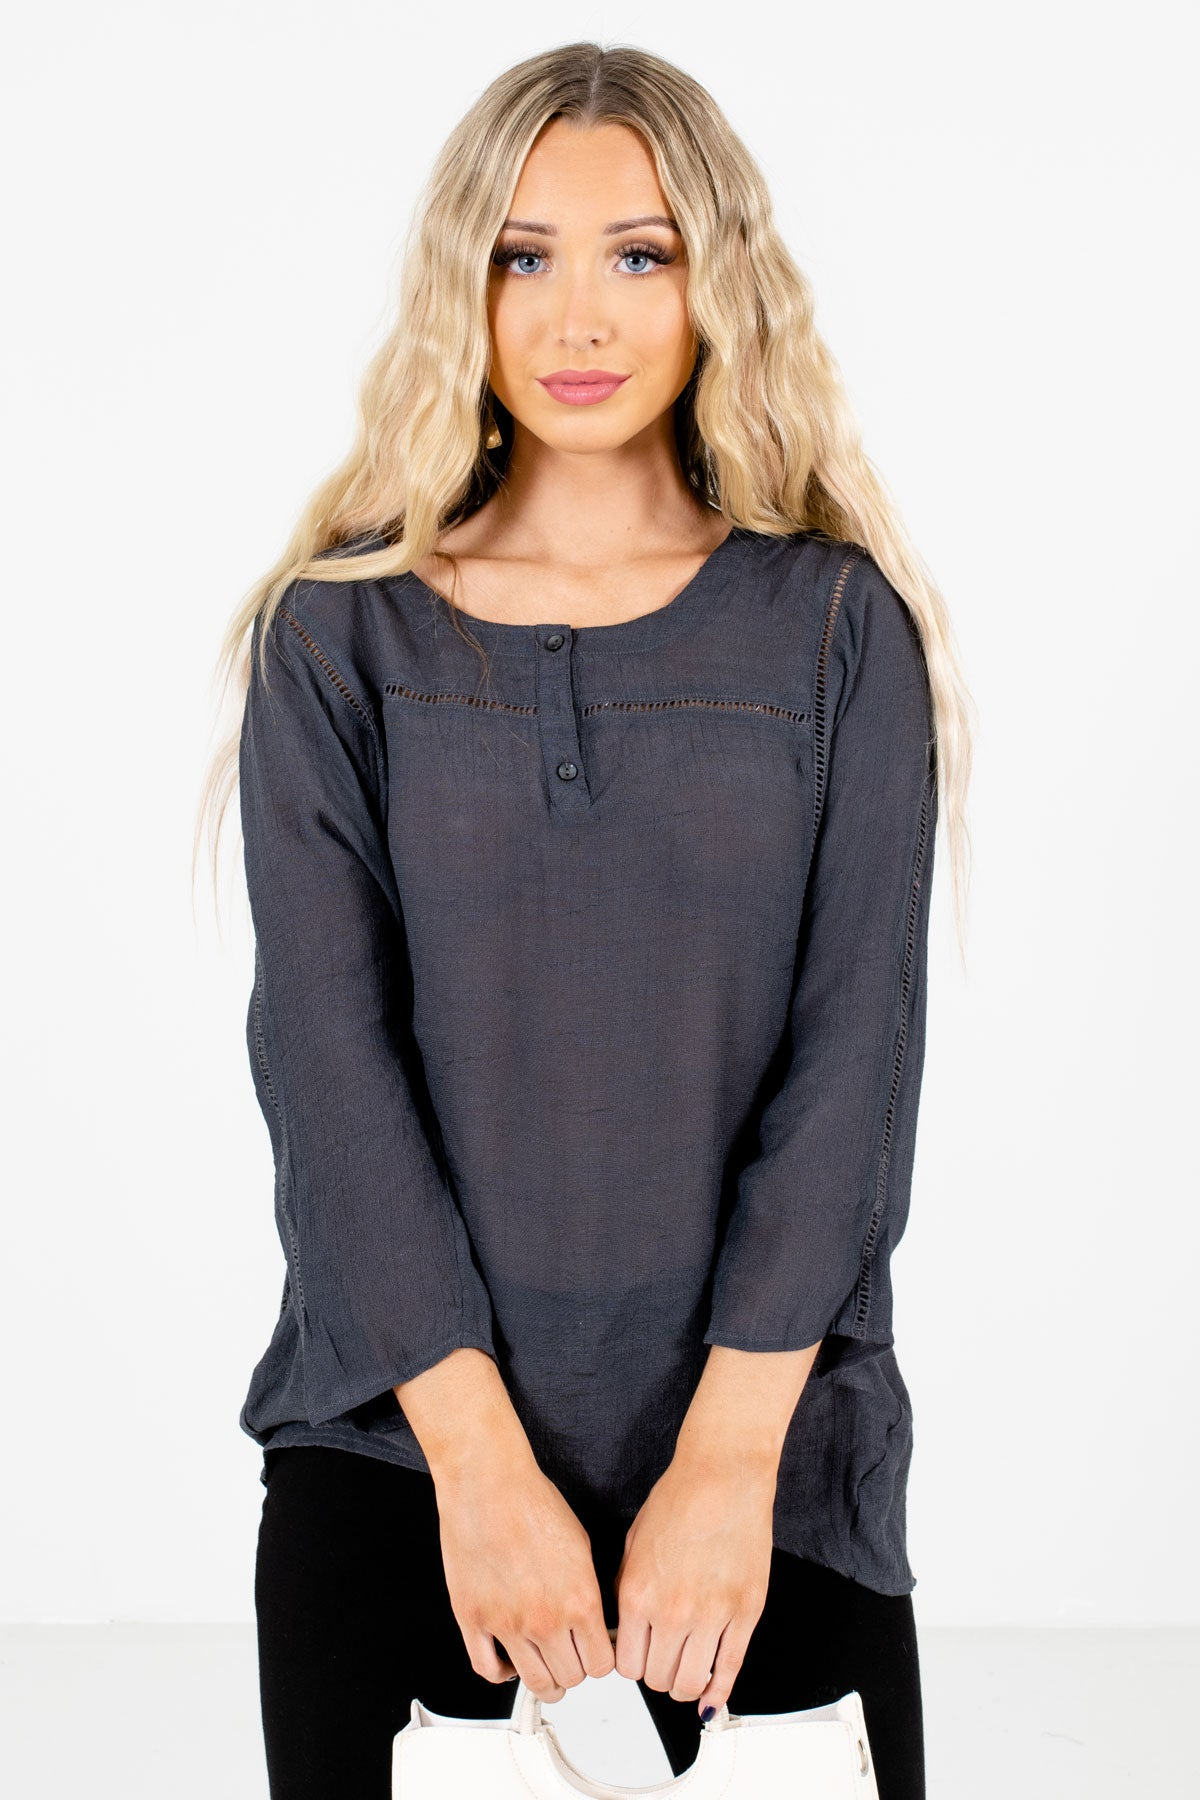 Charcoal Gray Ladder Lace Detailed Boutique Tops for Women